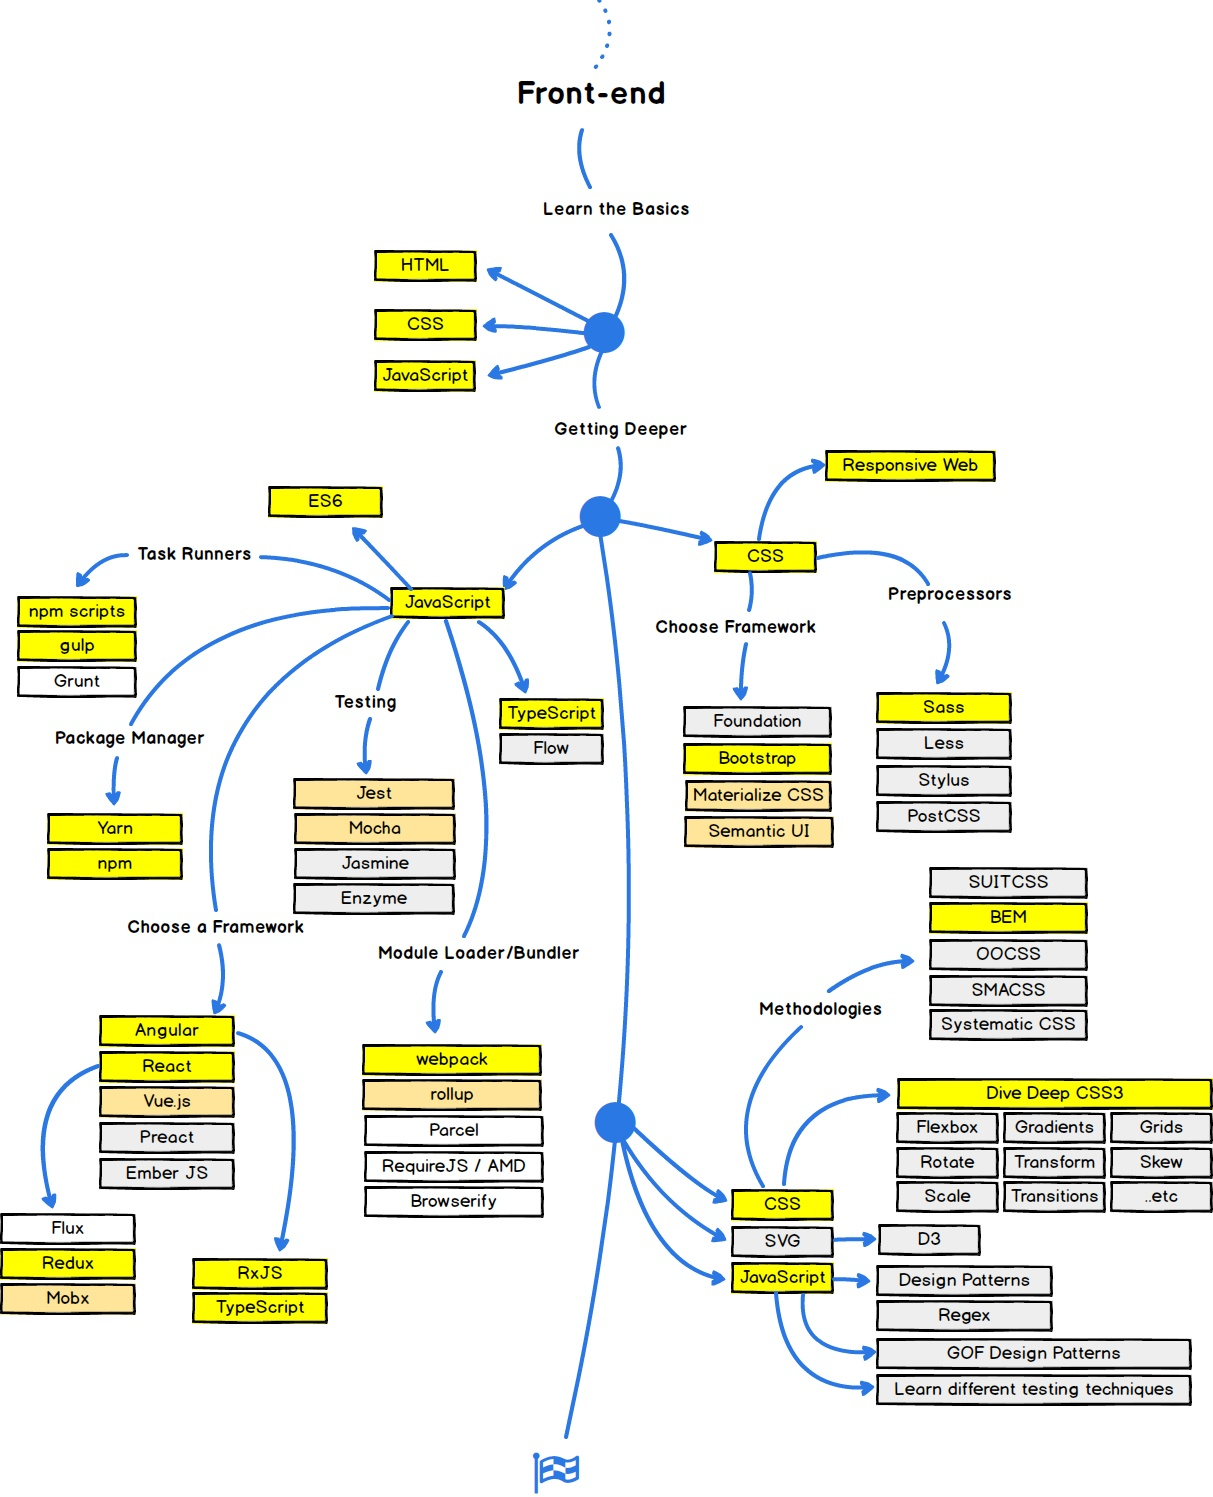 Frontend Knowledge Map